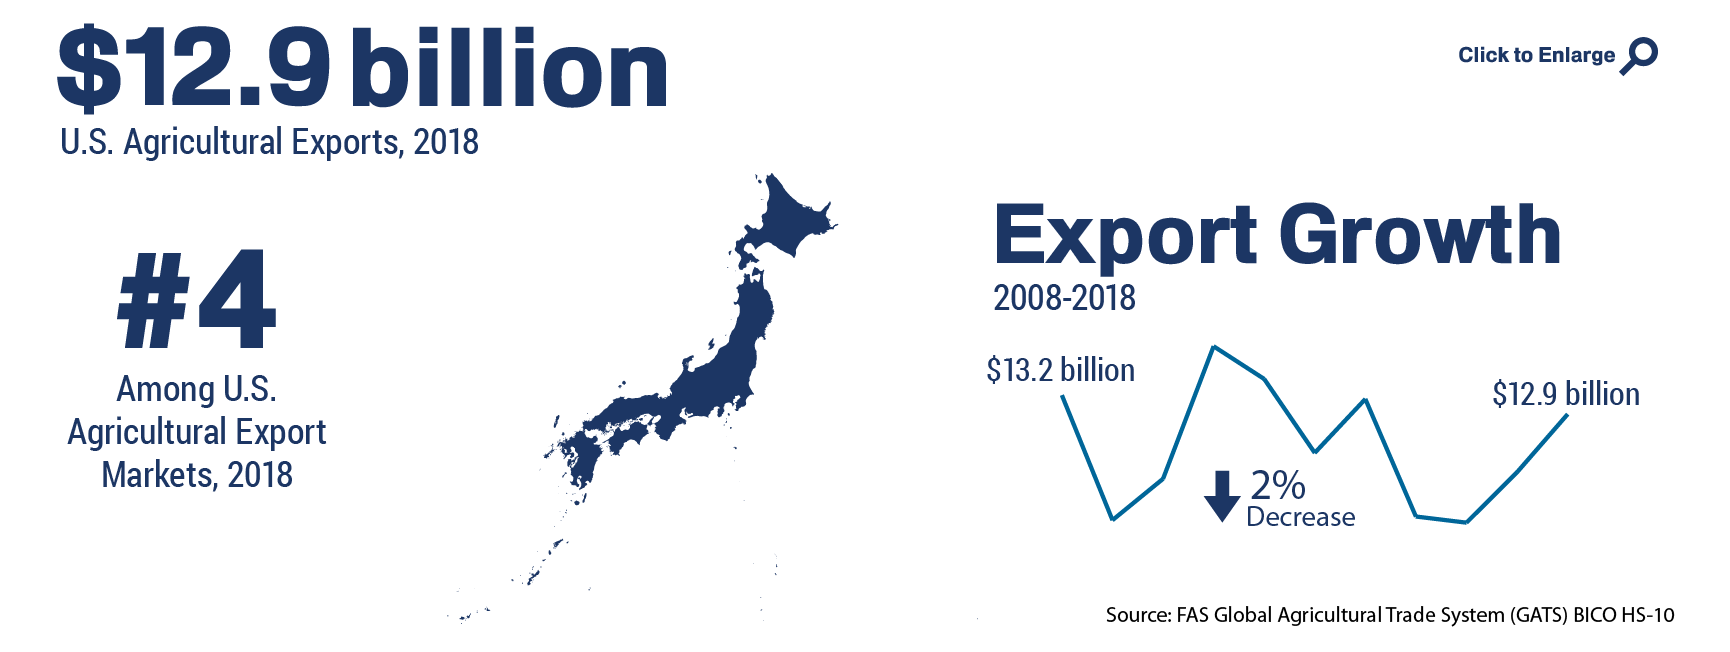 Infographic showing the ranking and total of U.S. agricultural trade to Japan in 2018